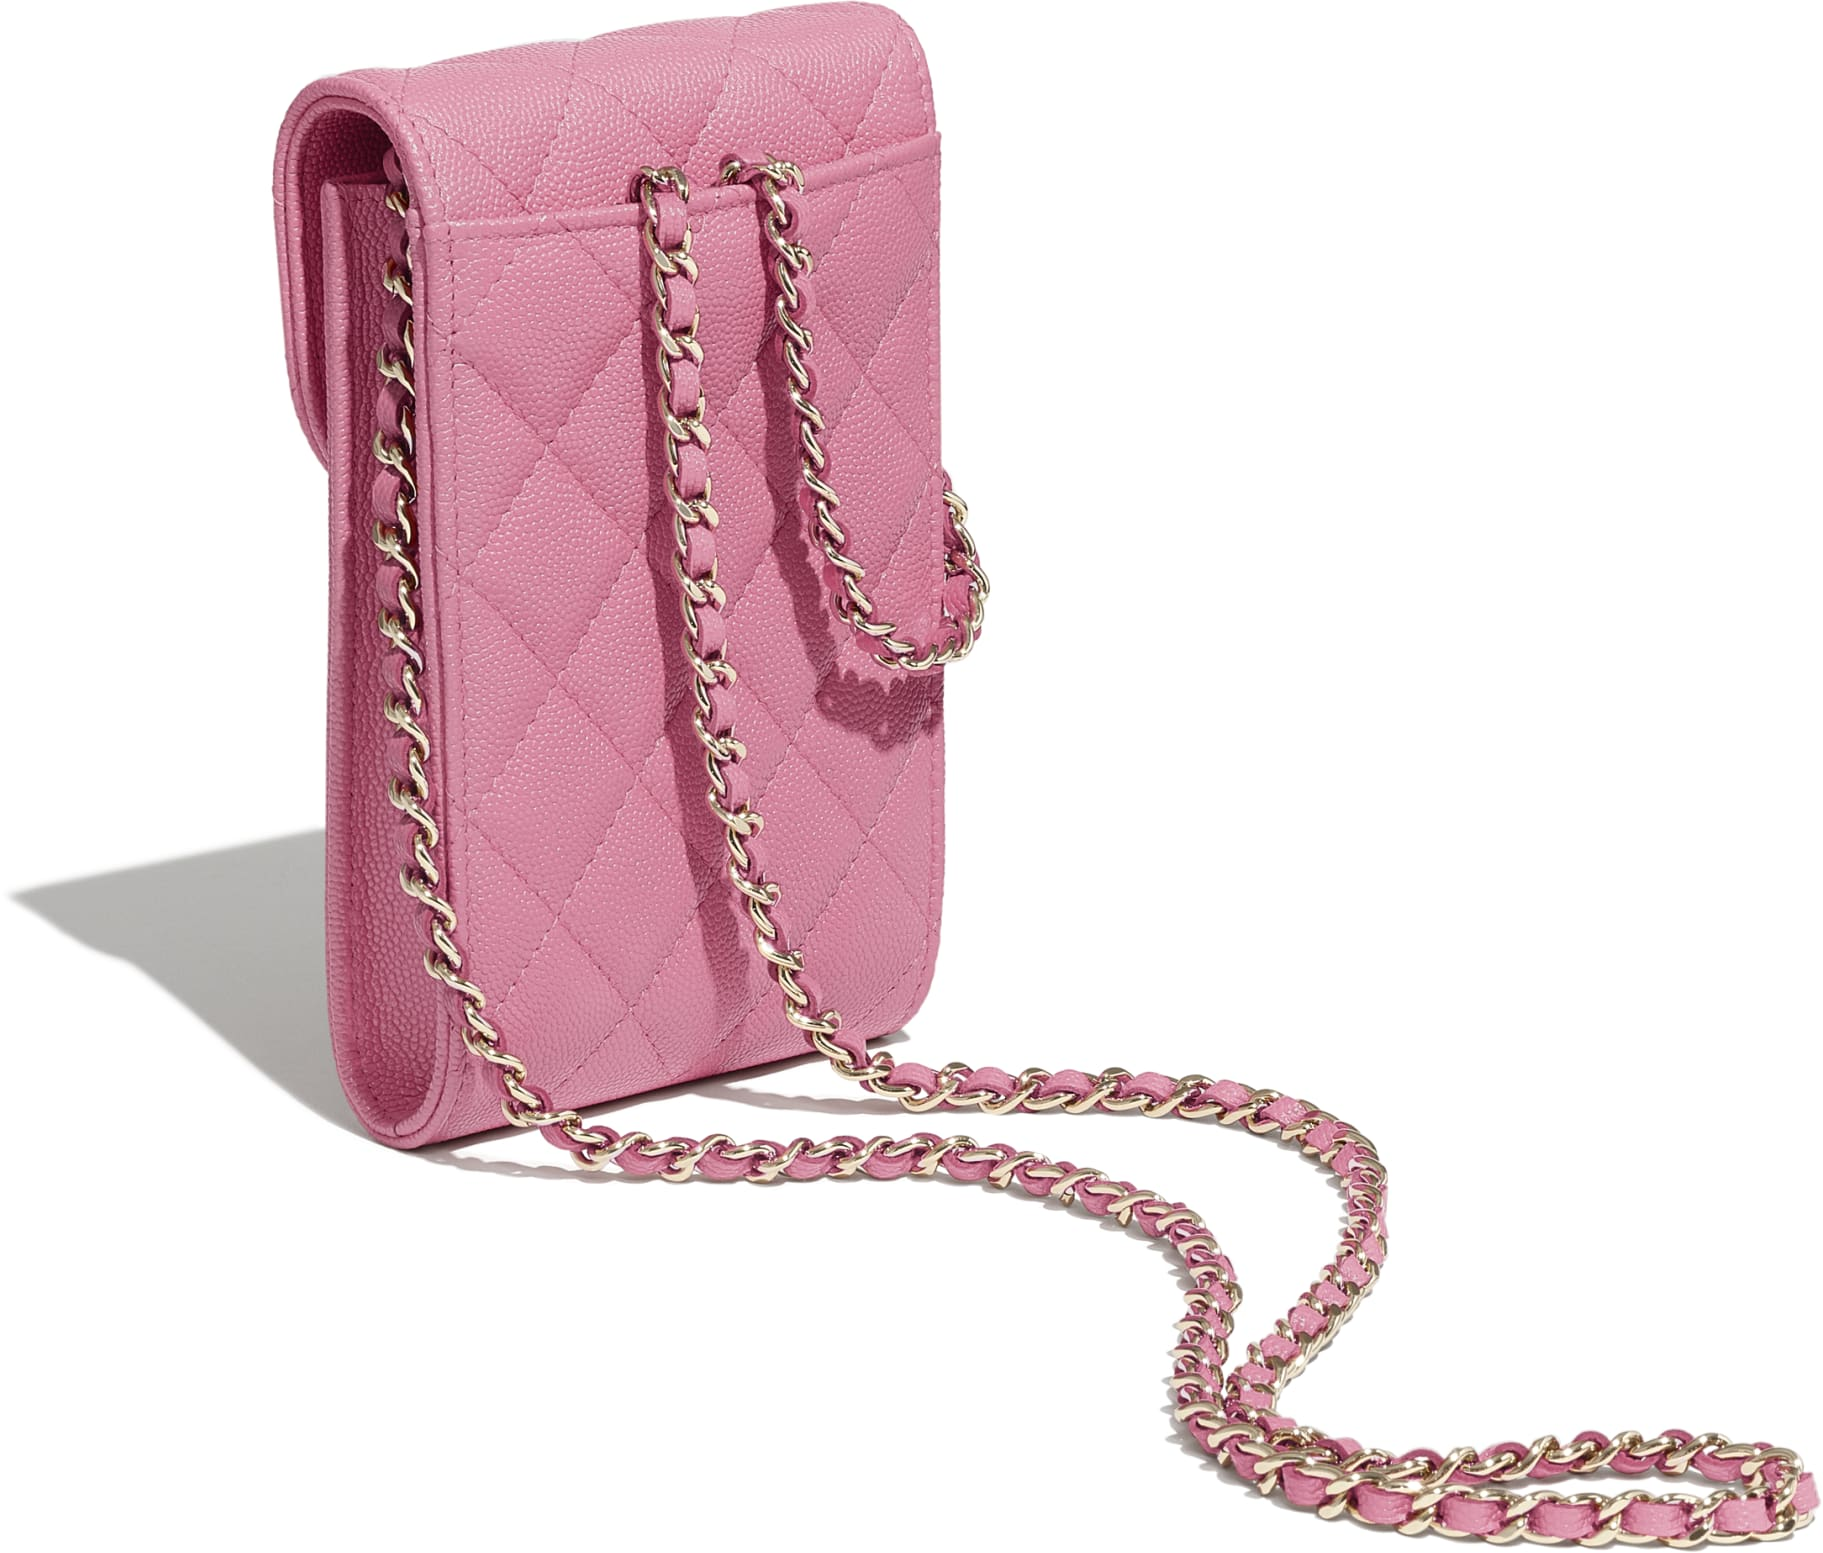 Phone Holder With Chain